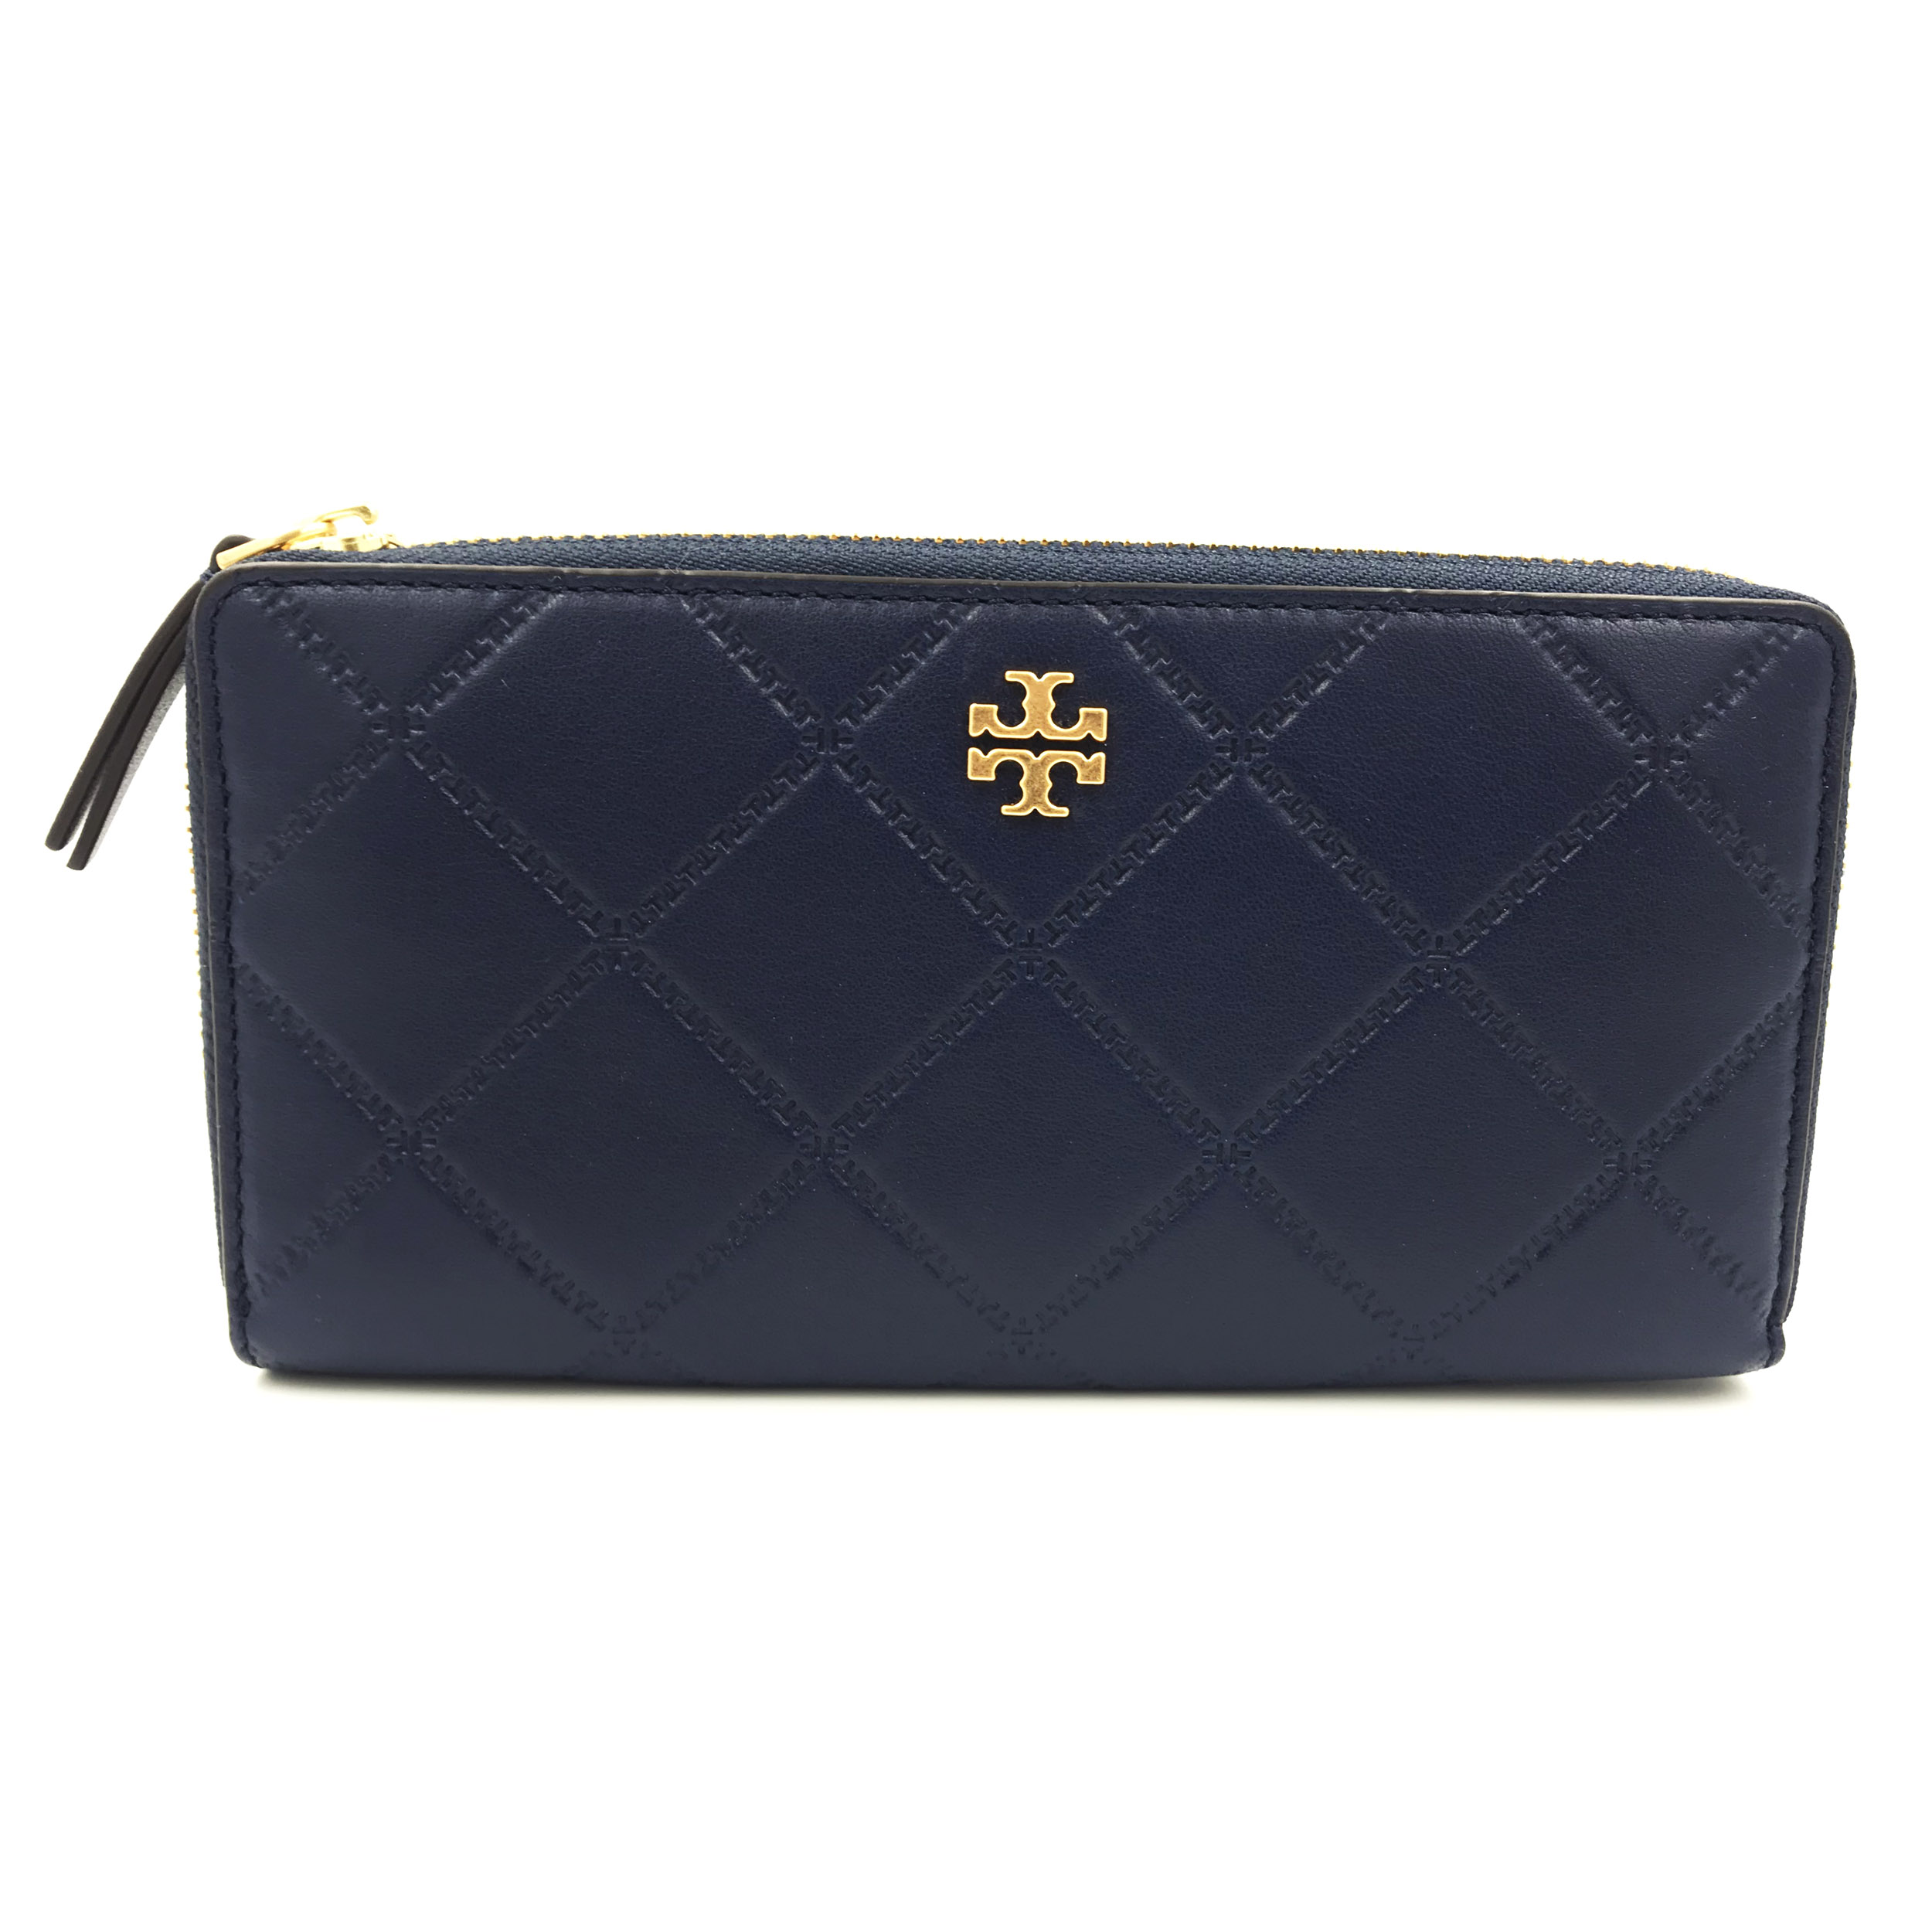 ca392716b7e Tory Burch Navy Wallet - Best Photo Wallet Justiceforkenny.Org